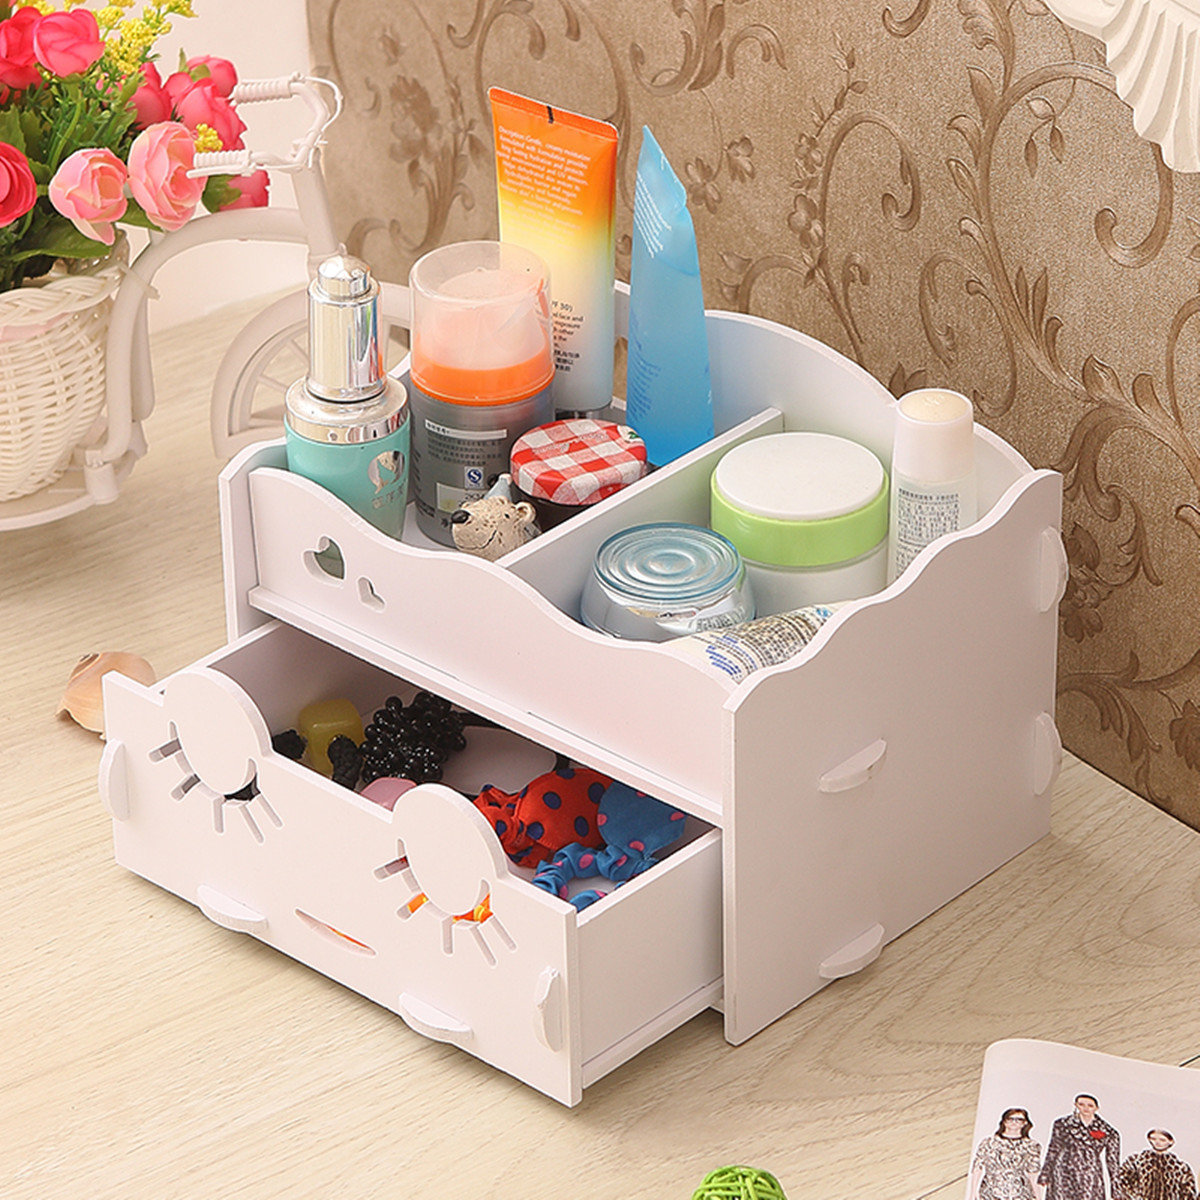 Smiling Face Wooden White Makeup Organizer Neat Table Jewelry Collecting Case Cosmetics Tools